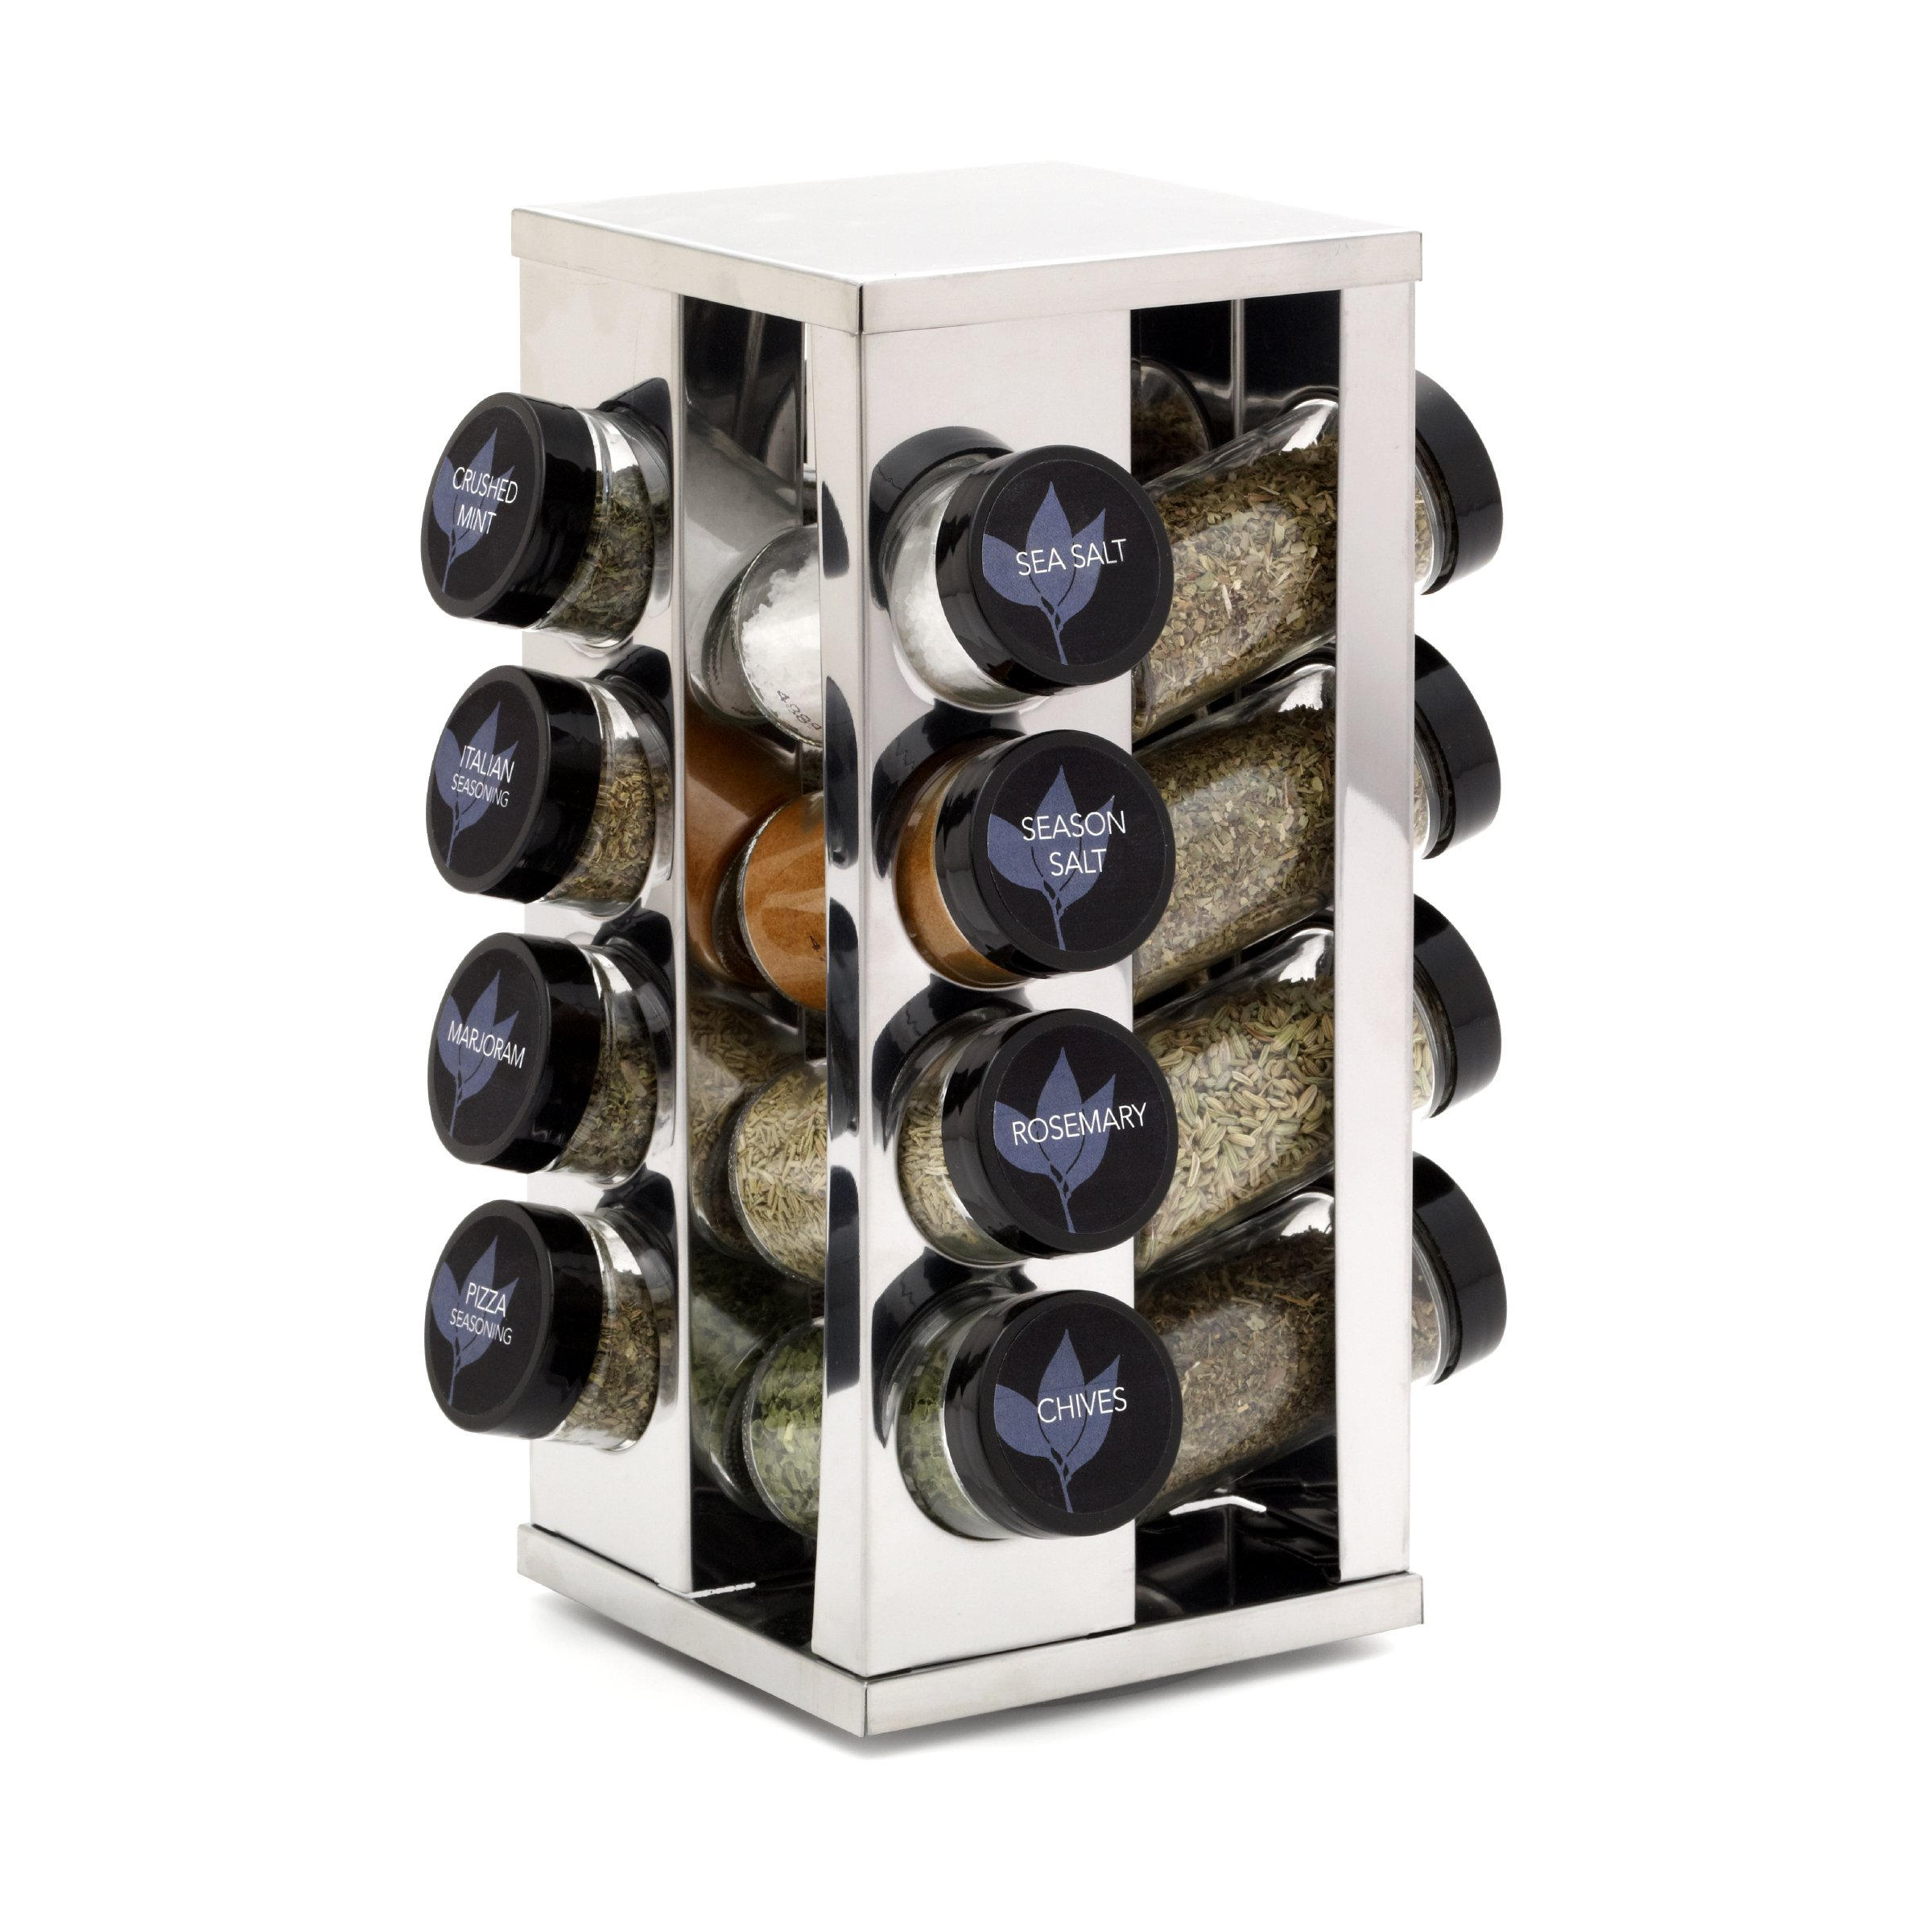 Kamenstein Heritage 16-Jar Revolving Countertop Spice Rack with Free Spice Refills for 5 Years by Kamenstein